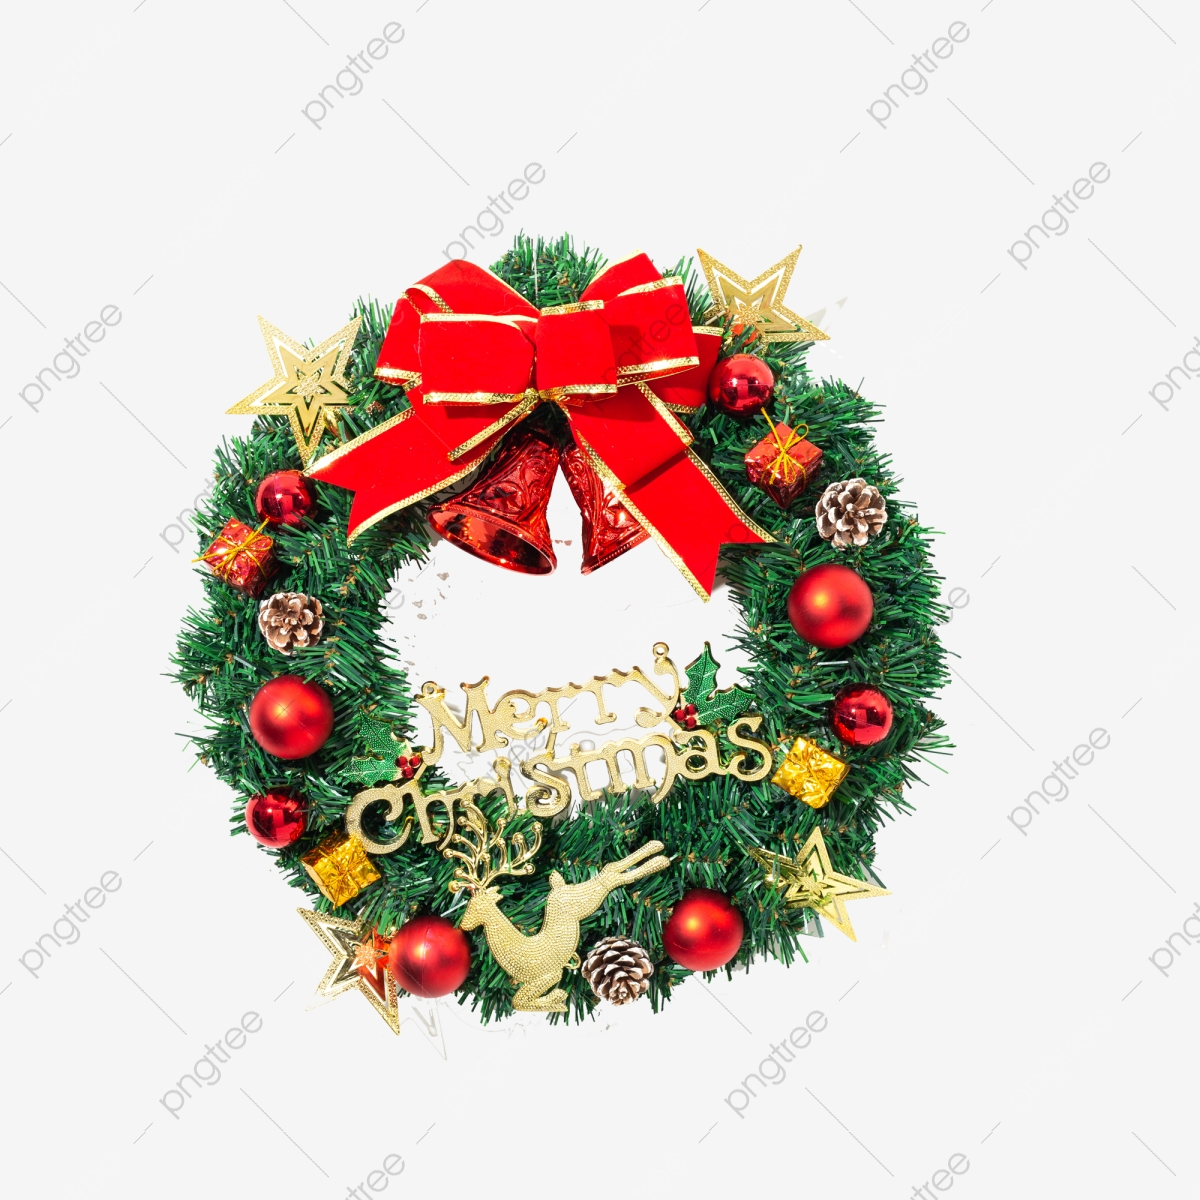 Christmas Wreath Images Free.Christmas Wreath Free Download Christmas Garland